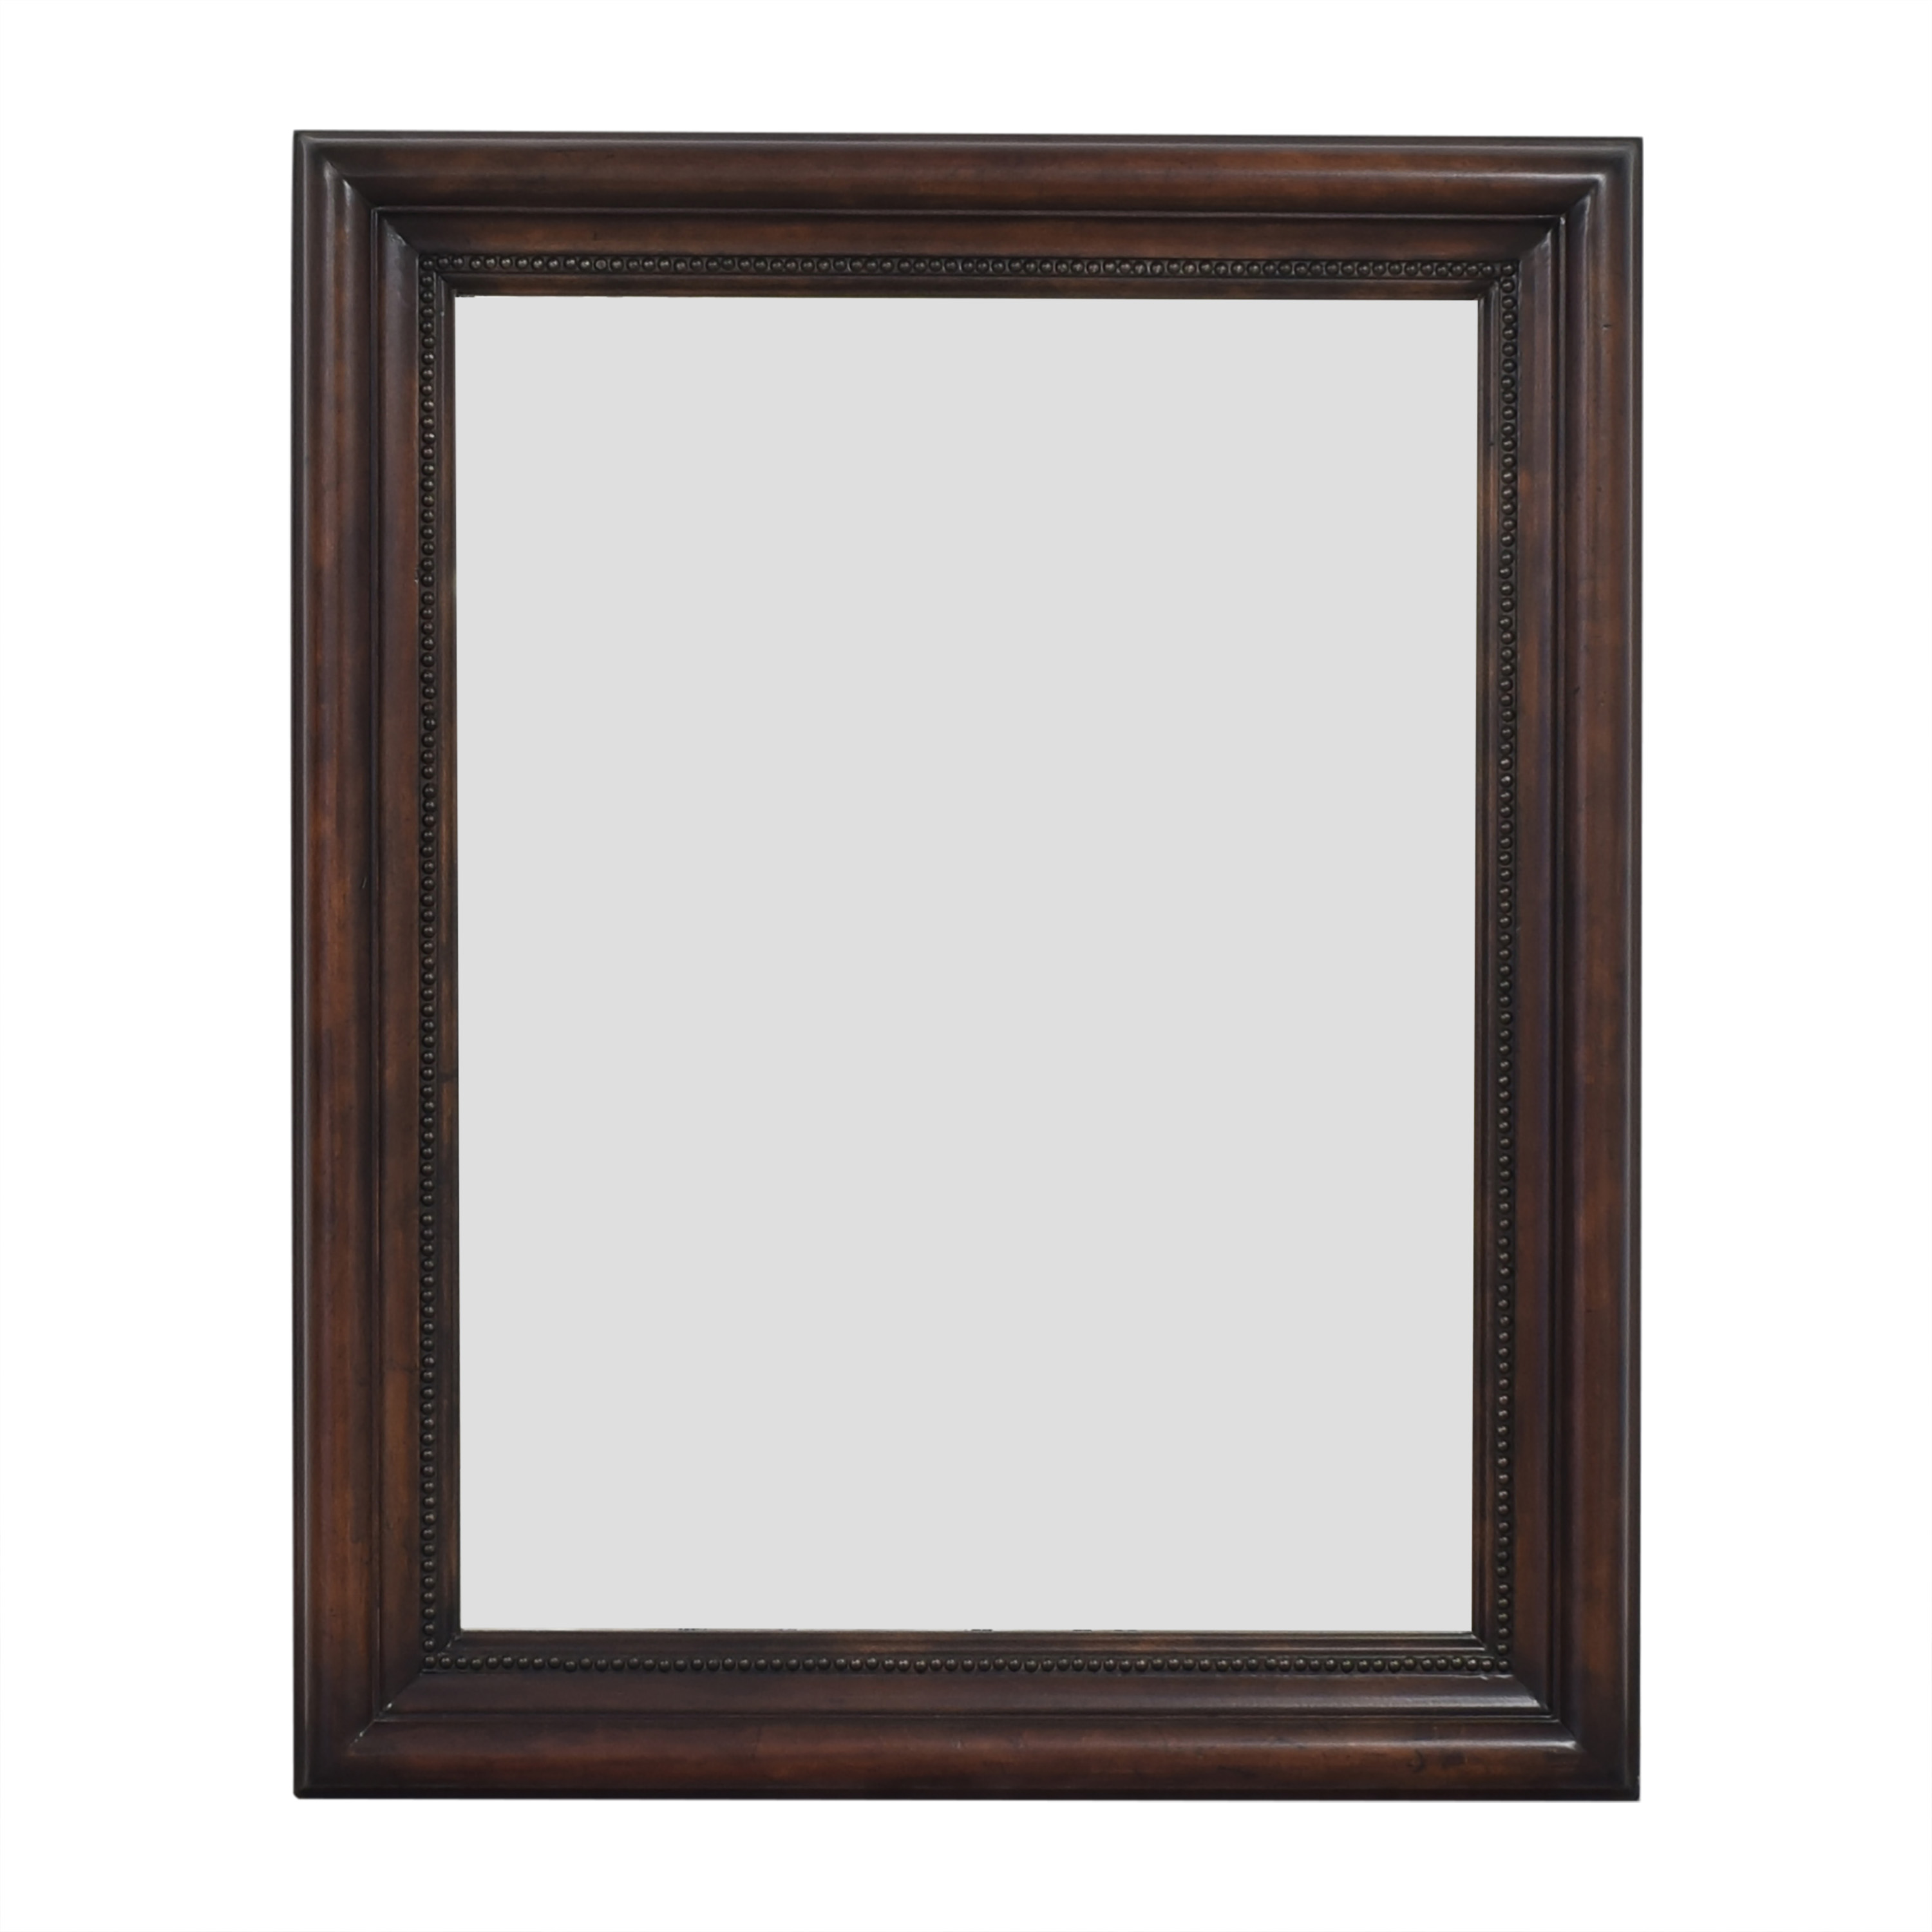 shop Ethan Allen Helmsley Rectangular Mirror Ethan Allen Decor